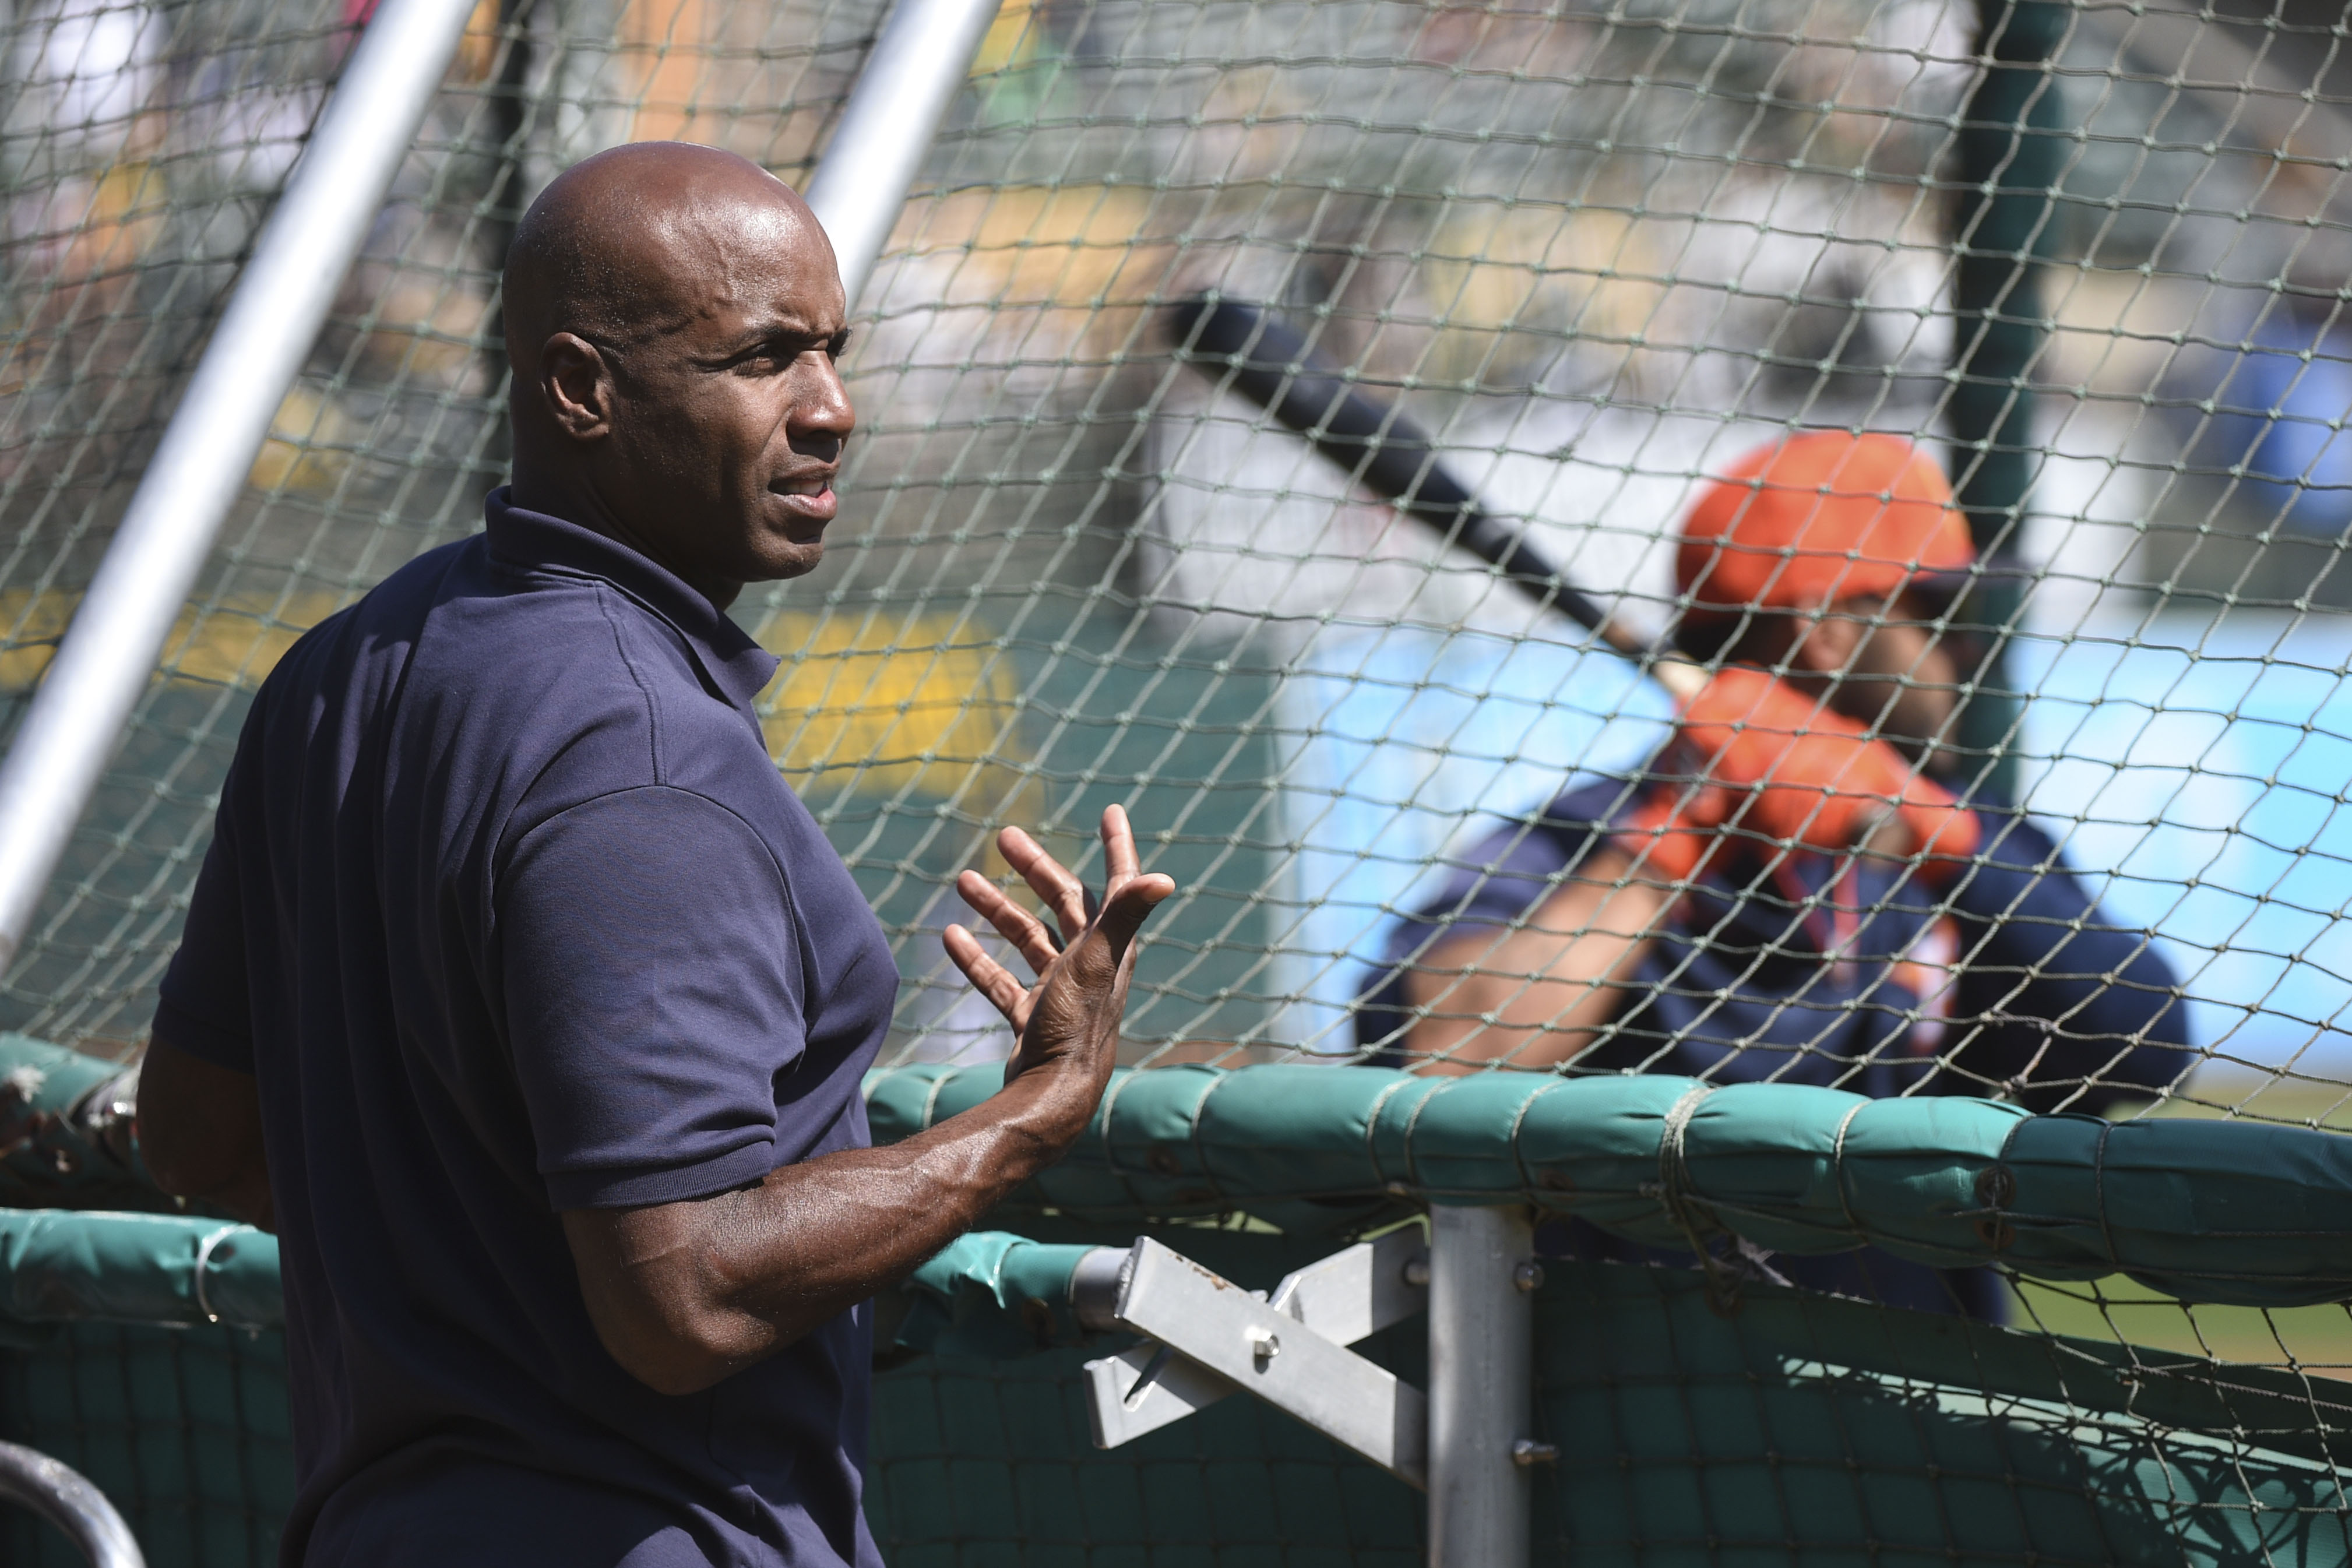 Here is Barry at an Astros-A's game, helping Dexter Fowler be a destroyer of worlds. Let's ignore that Fowler was 0-4 that day.